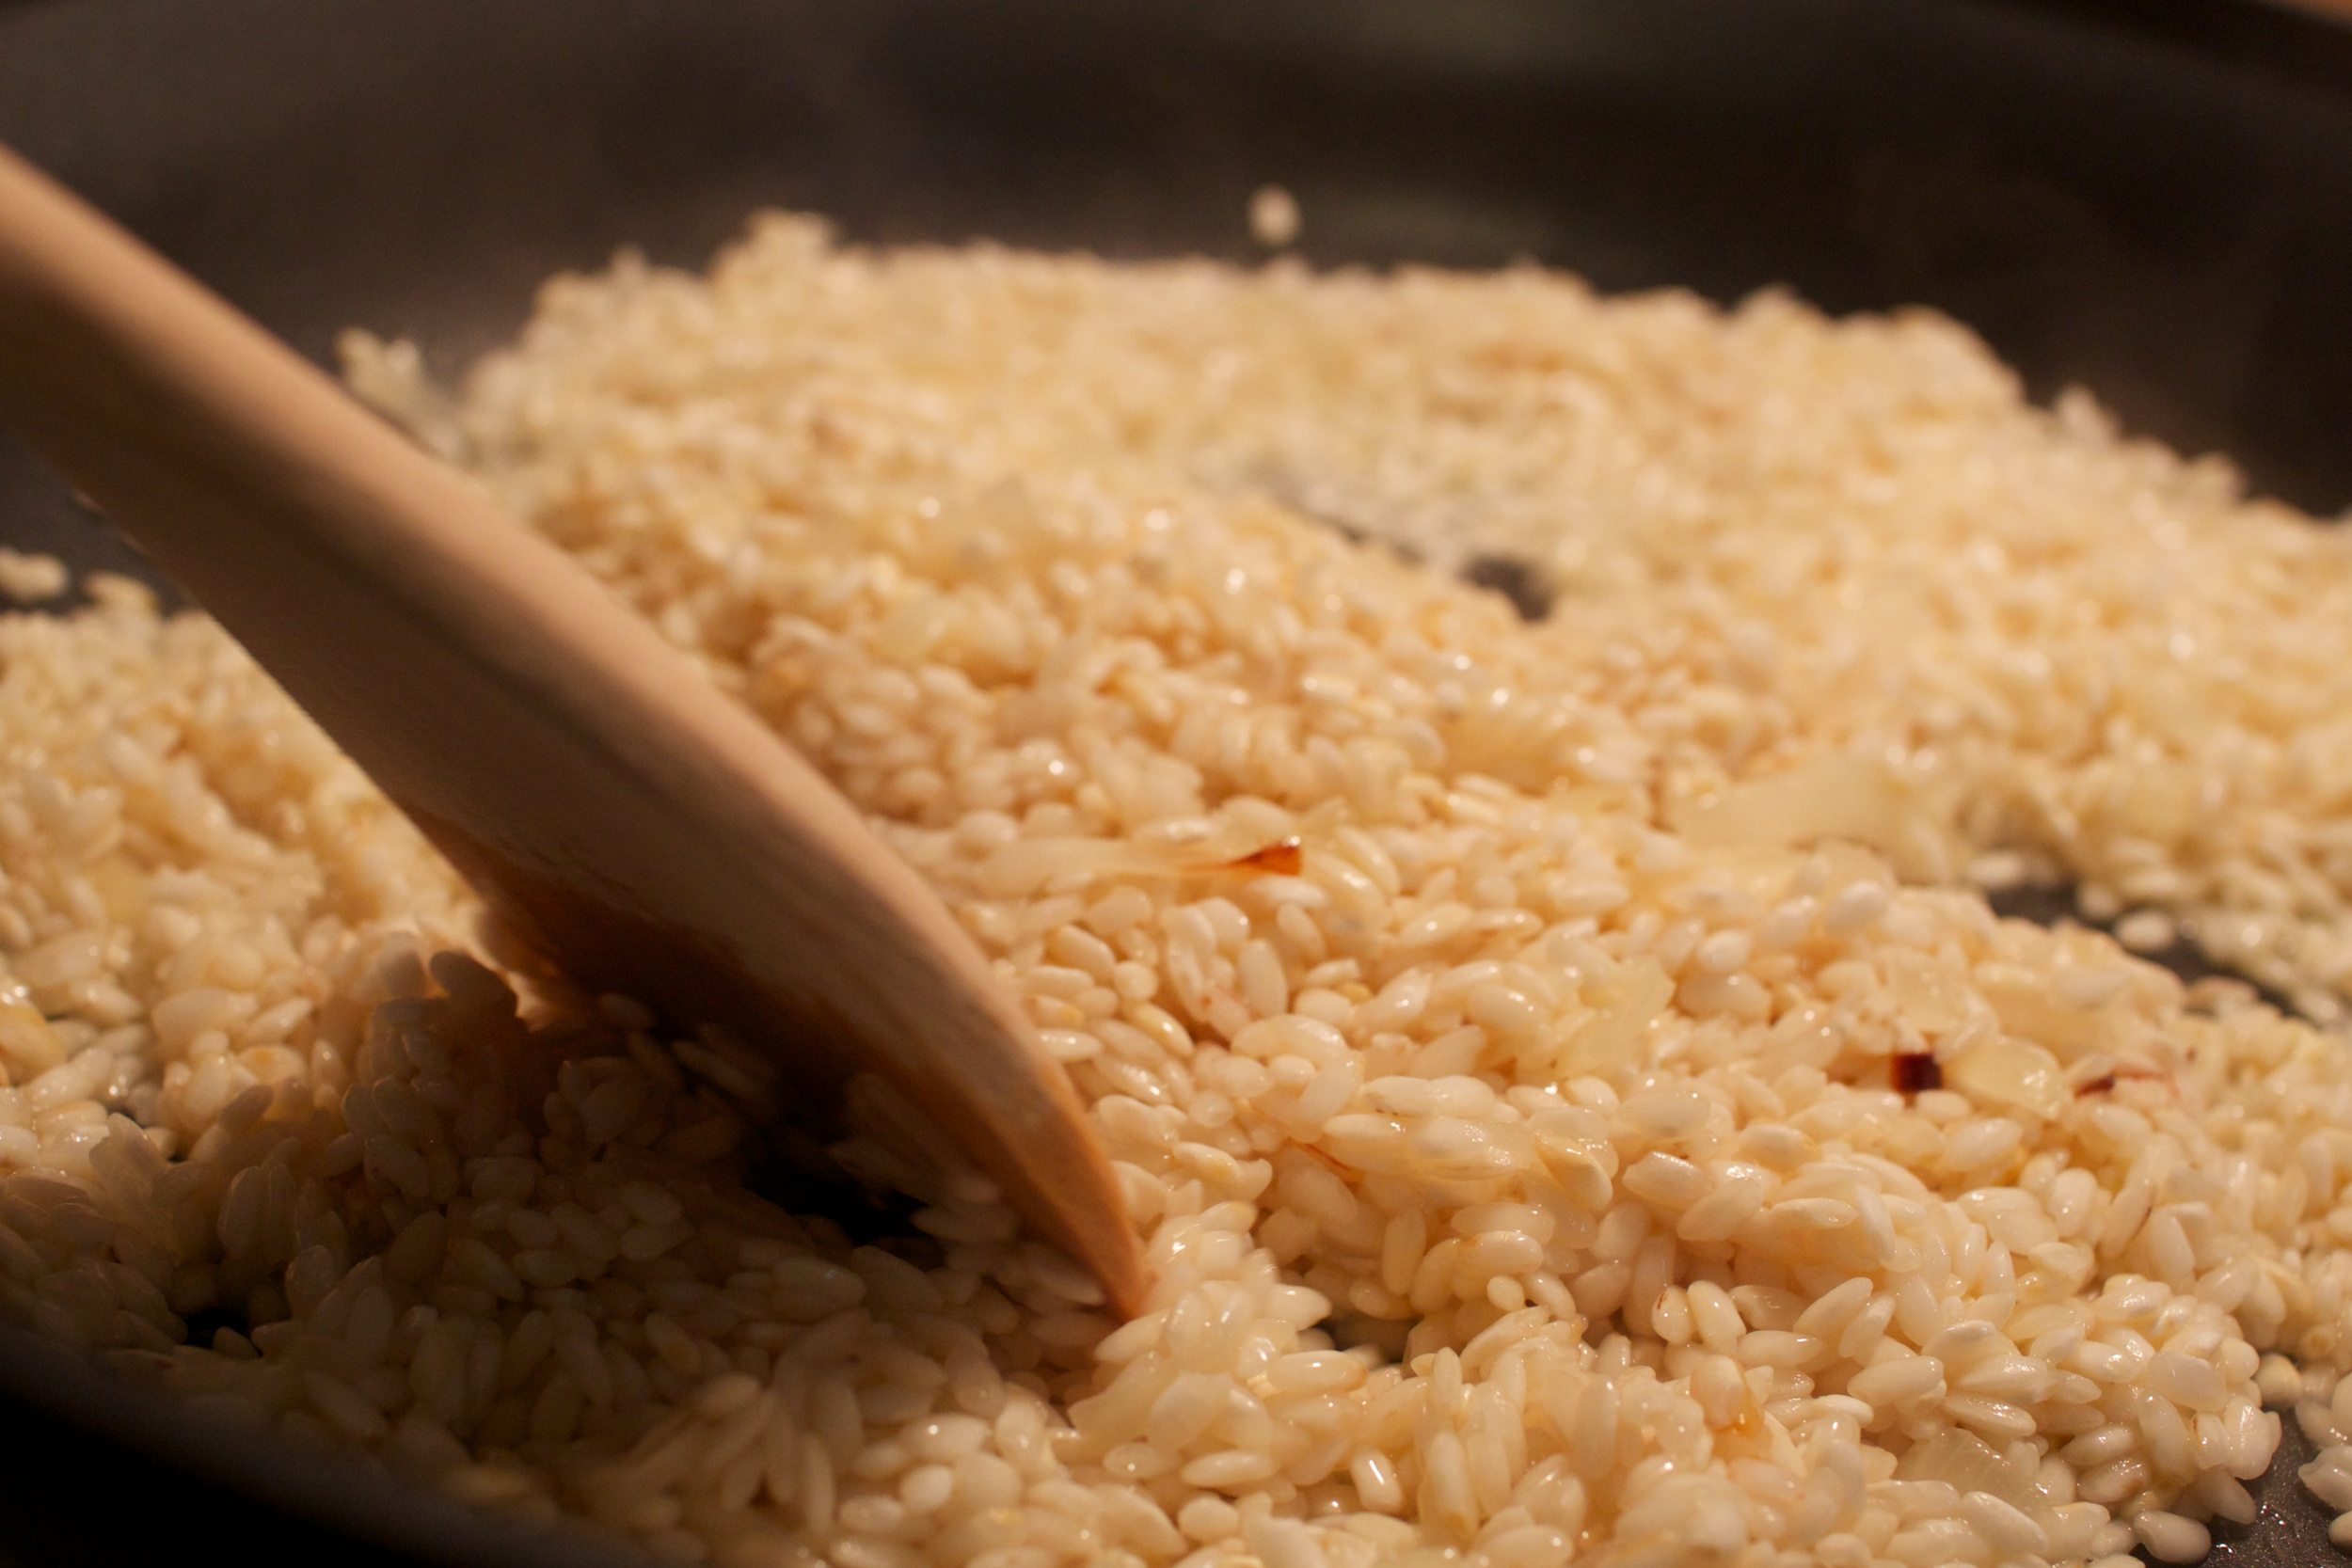 After we sautéed the onions, we added the arborio rice